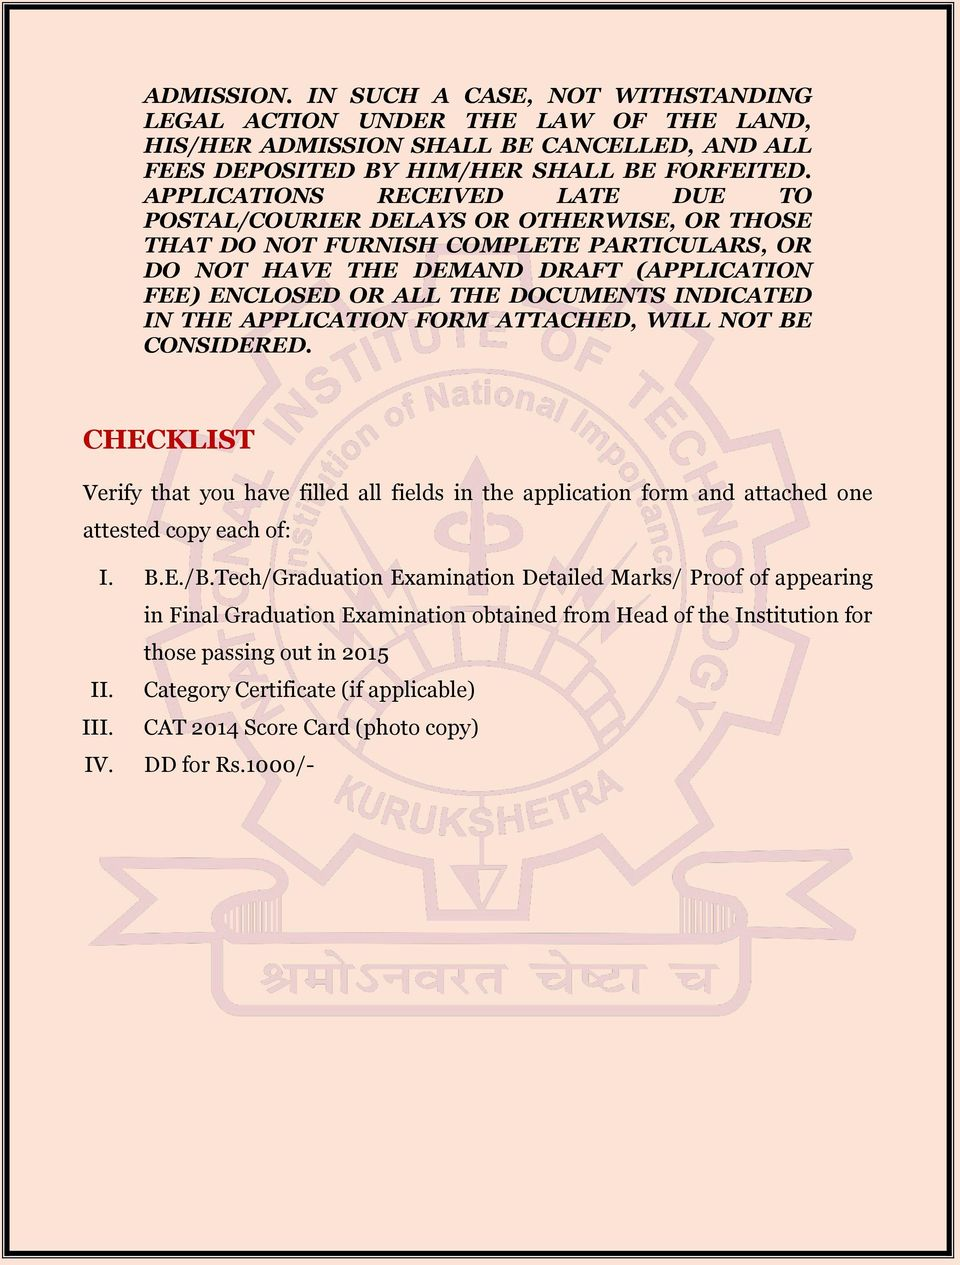 DOCUMENTS INDICATED IN THE APPLICATION FORM ATTACHED, WILL NOT BE CONSIDERED. CHECKLIST Verify that you have filled all fields in the application form and attached one attested copy each of: I. B.E./B.